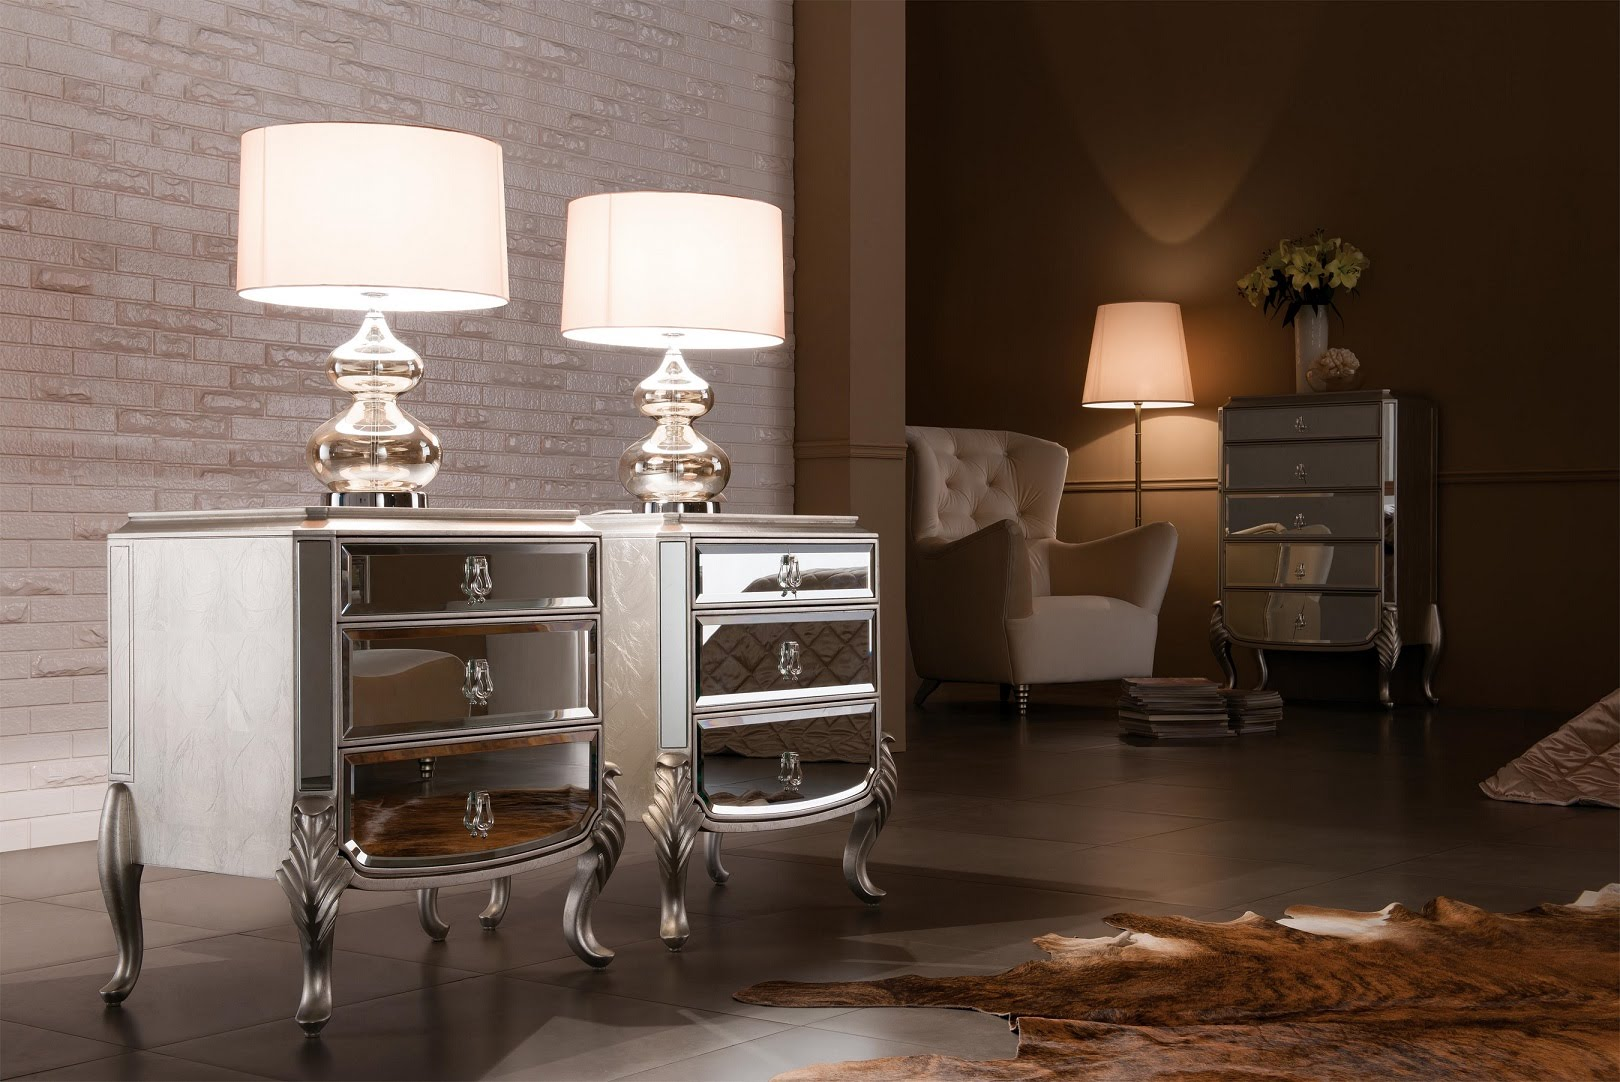 furniture simple wood sofa side table ideas grey floor with luxury silver mirrored veiled lamps brick wall accents cream brown fabric armchair ceramic tiger skin rug white accent